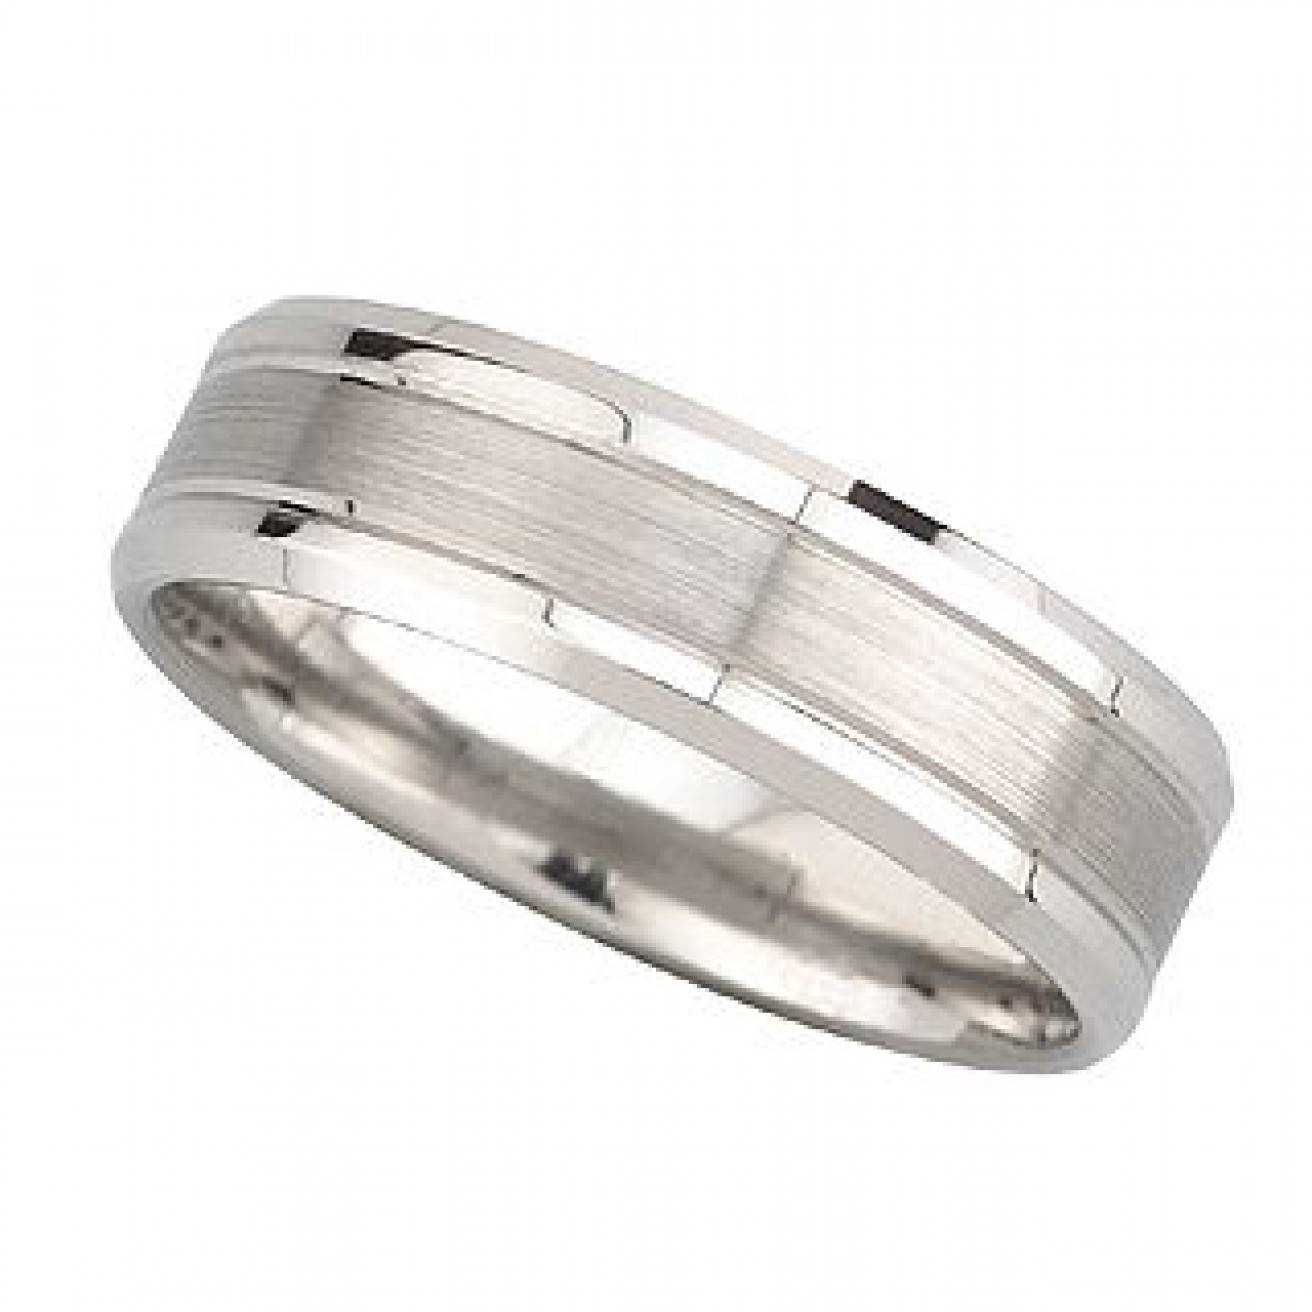 Photo Gallery of Platinum Male Wedding Rings Viewing 12 of 15 Photos